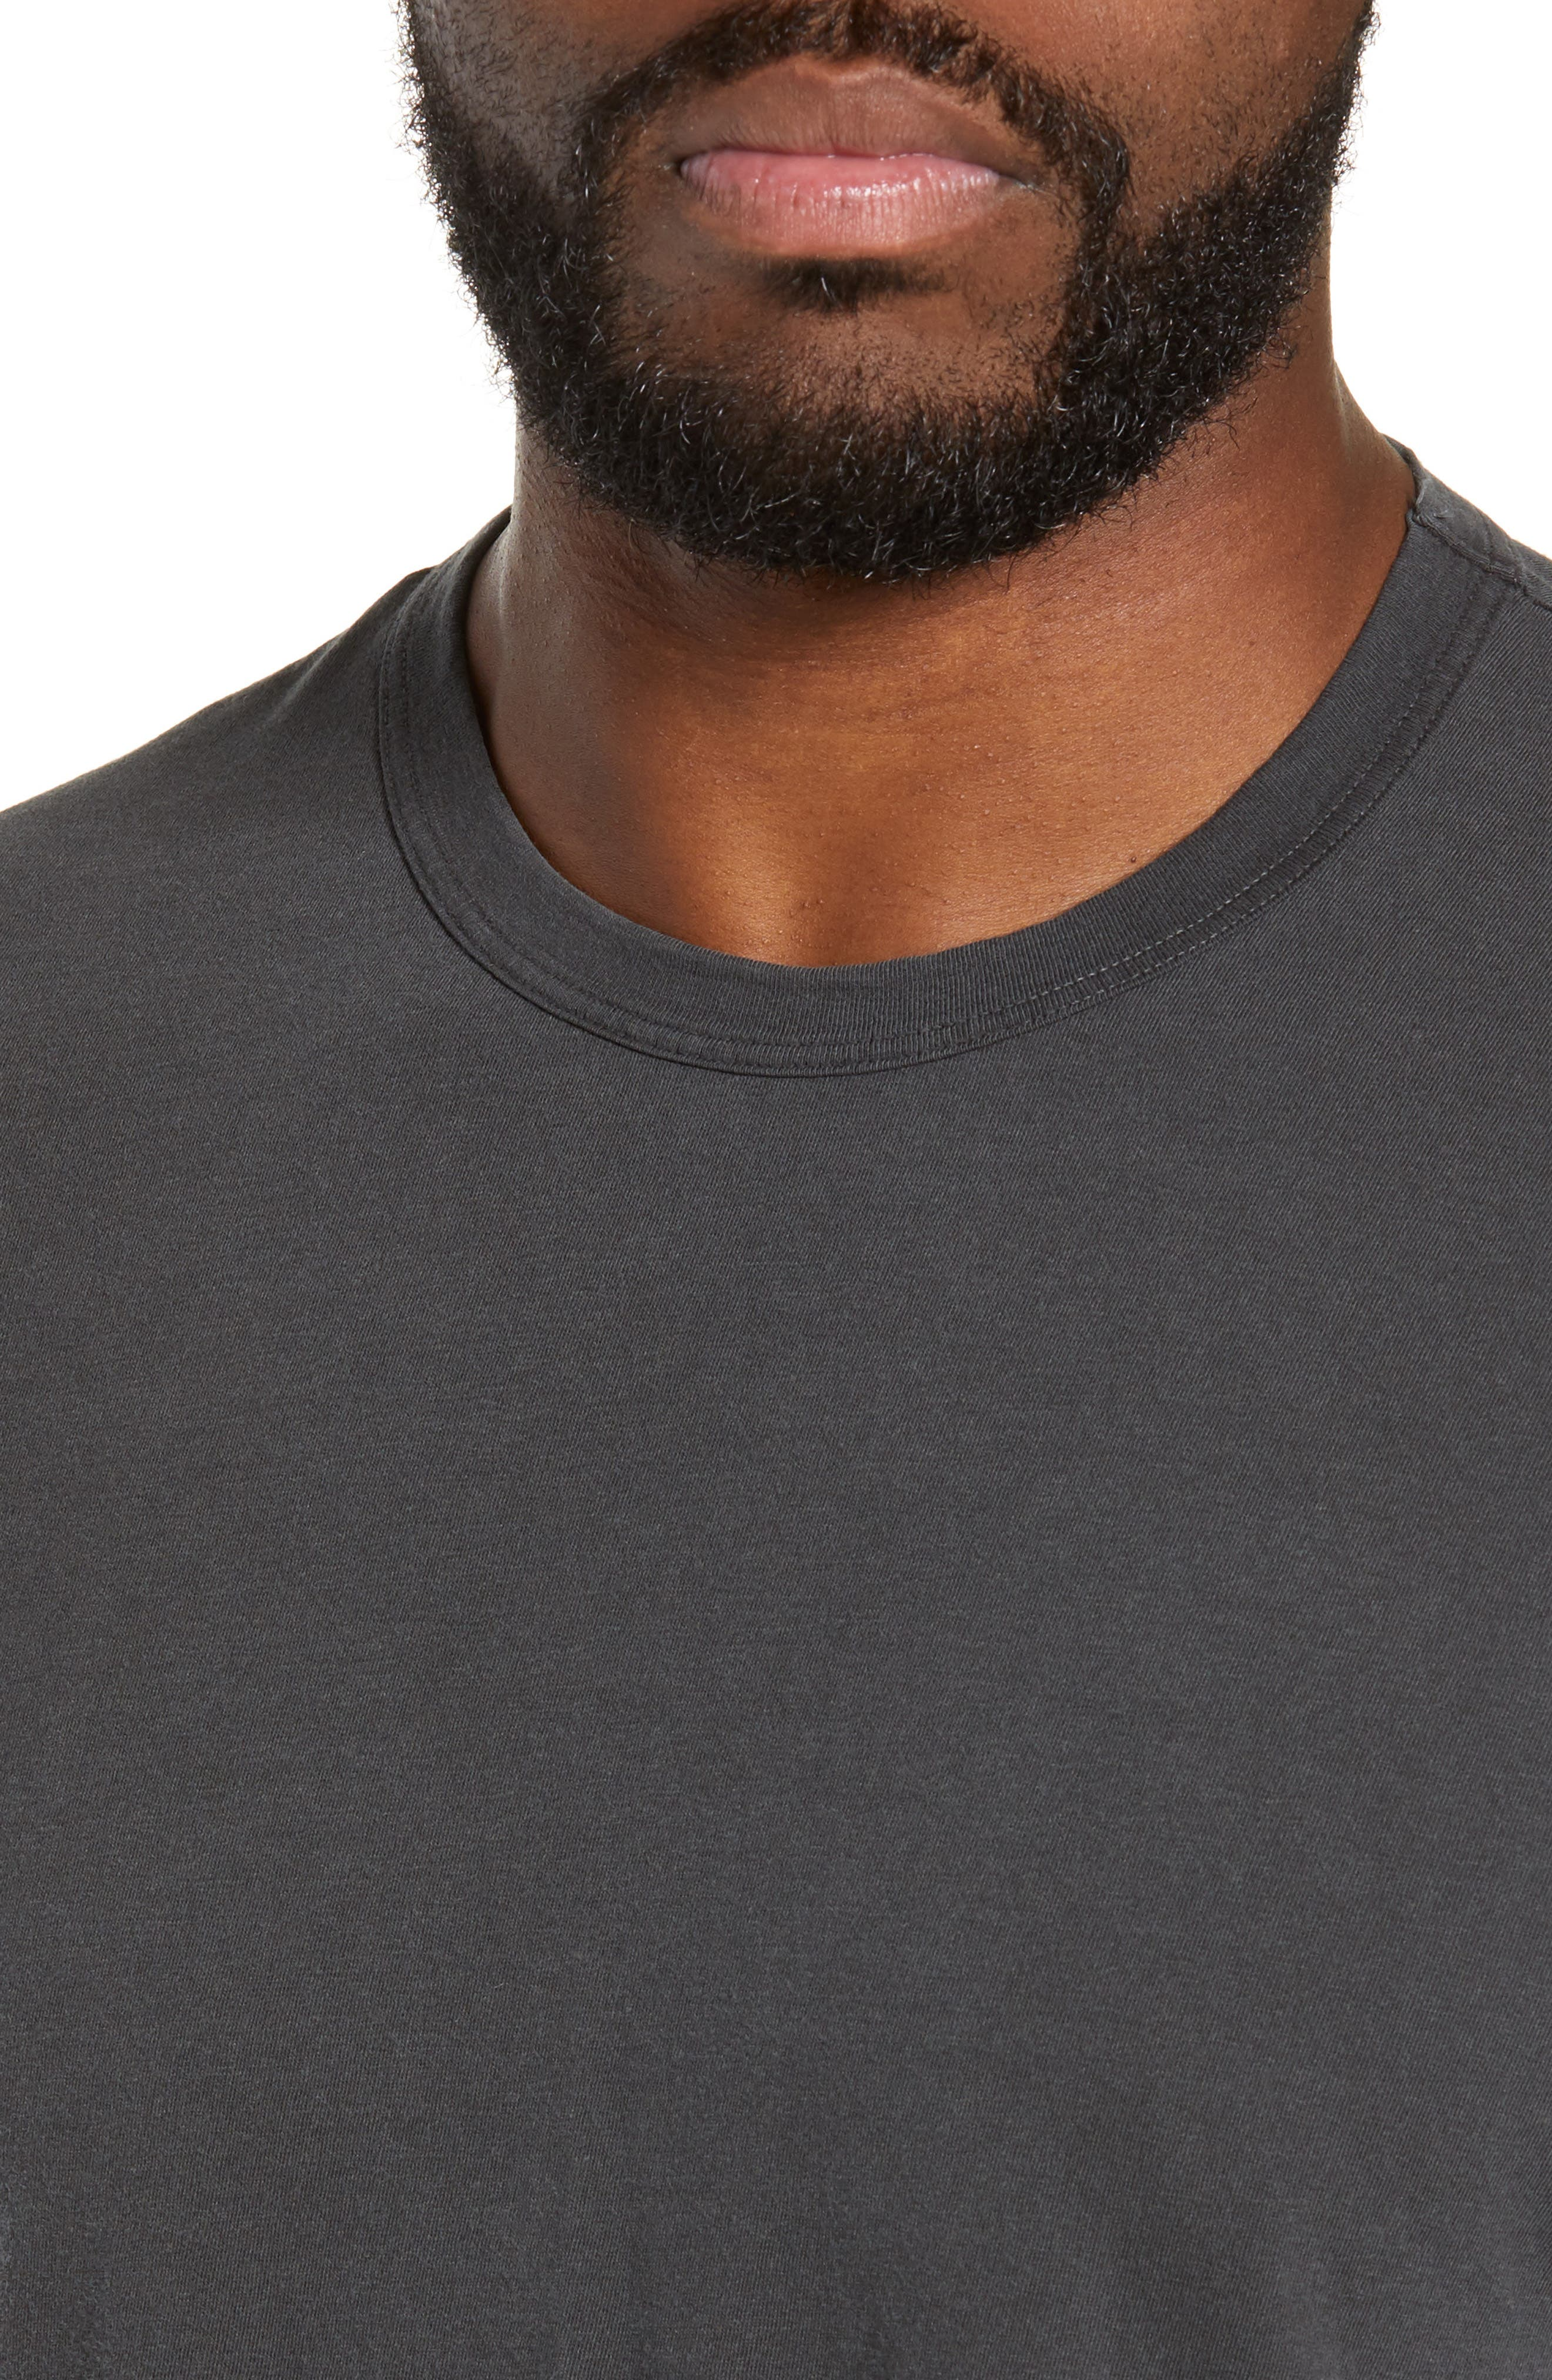 JAMES PERSE, Regular Fit Tonal Palms Crewneck Shirt, Alternate thumbnail 4, color, 020